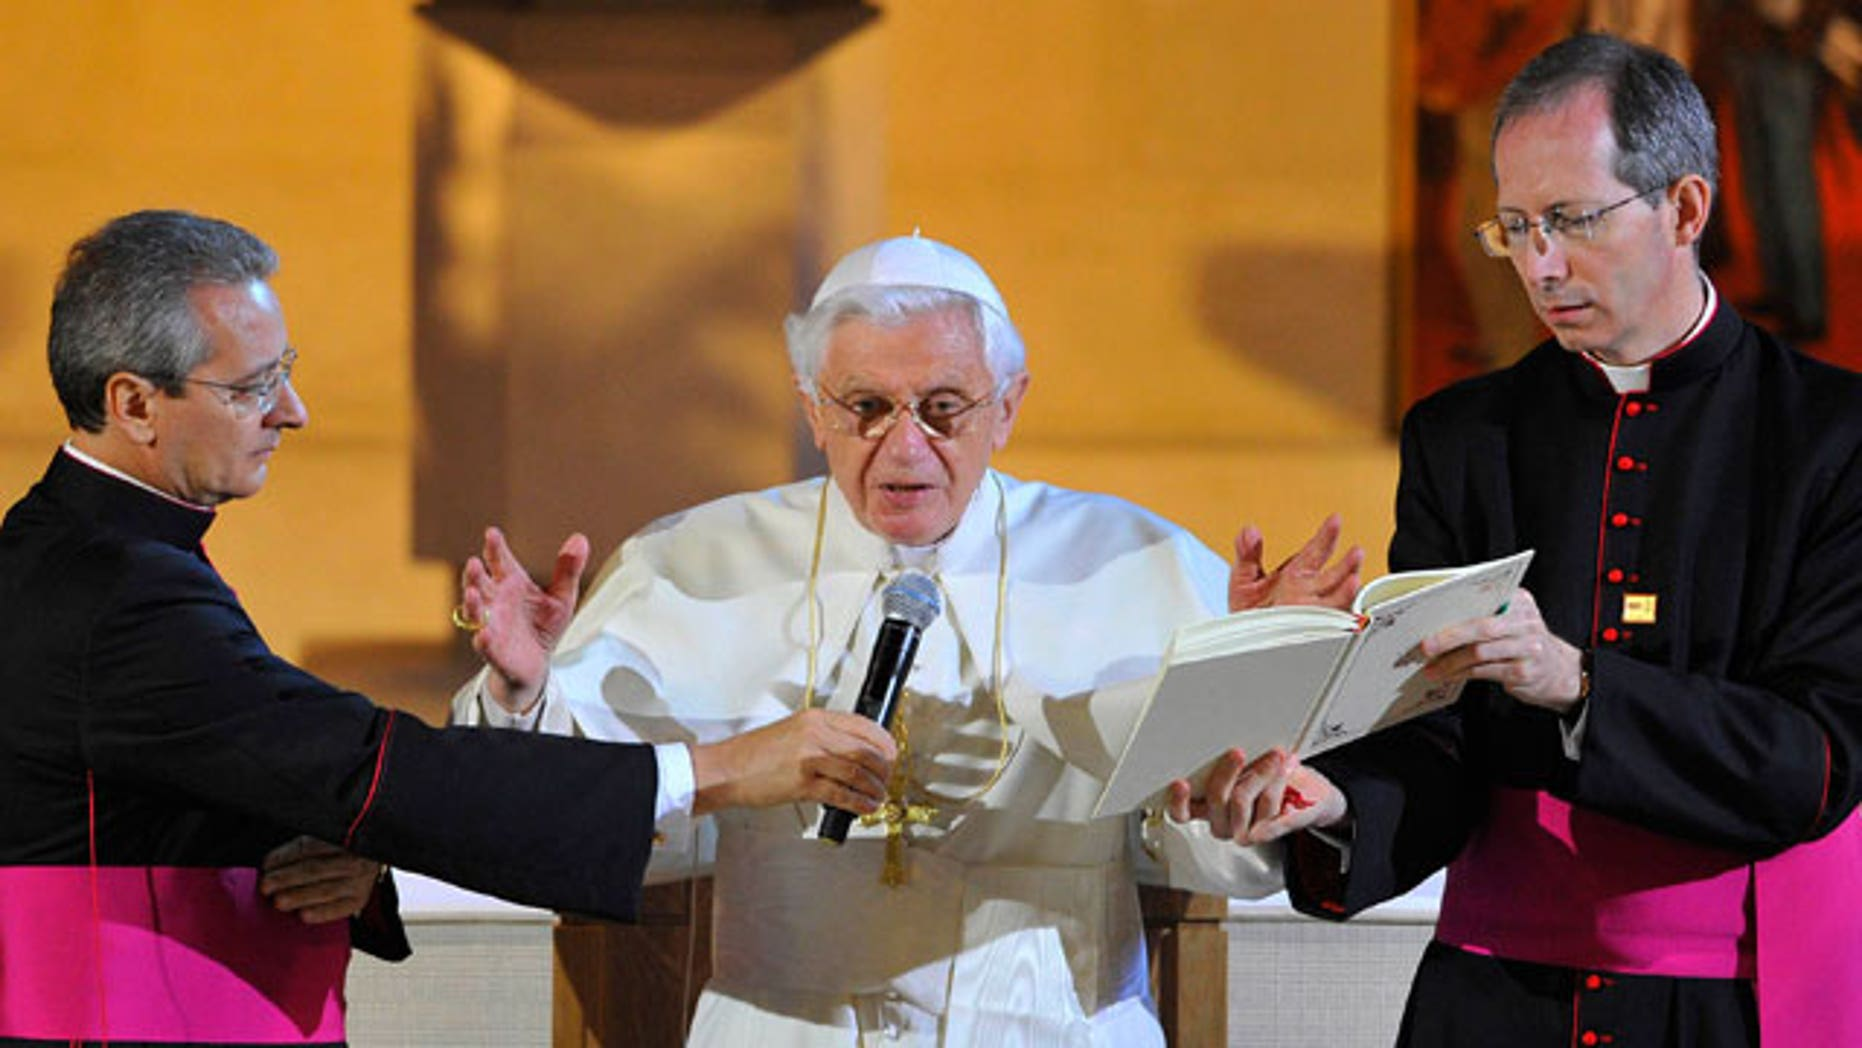 Pope Benedict XVI, right, attends a Service of Prayer at St Mary's University College Chapel at Twickenham, London Friday Sept. 17, 2010. Thousands of cheering Catholic schoolchildren feted Pope Benedict XVI on his second day in Britain on Friday, offering a boisterous welcome even as the pontiff urged their teachers to make sure to provide a trusting, safe environment.